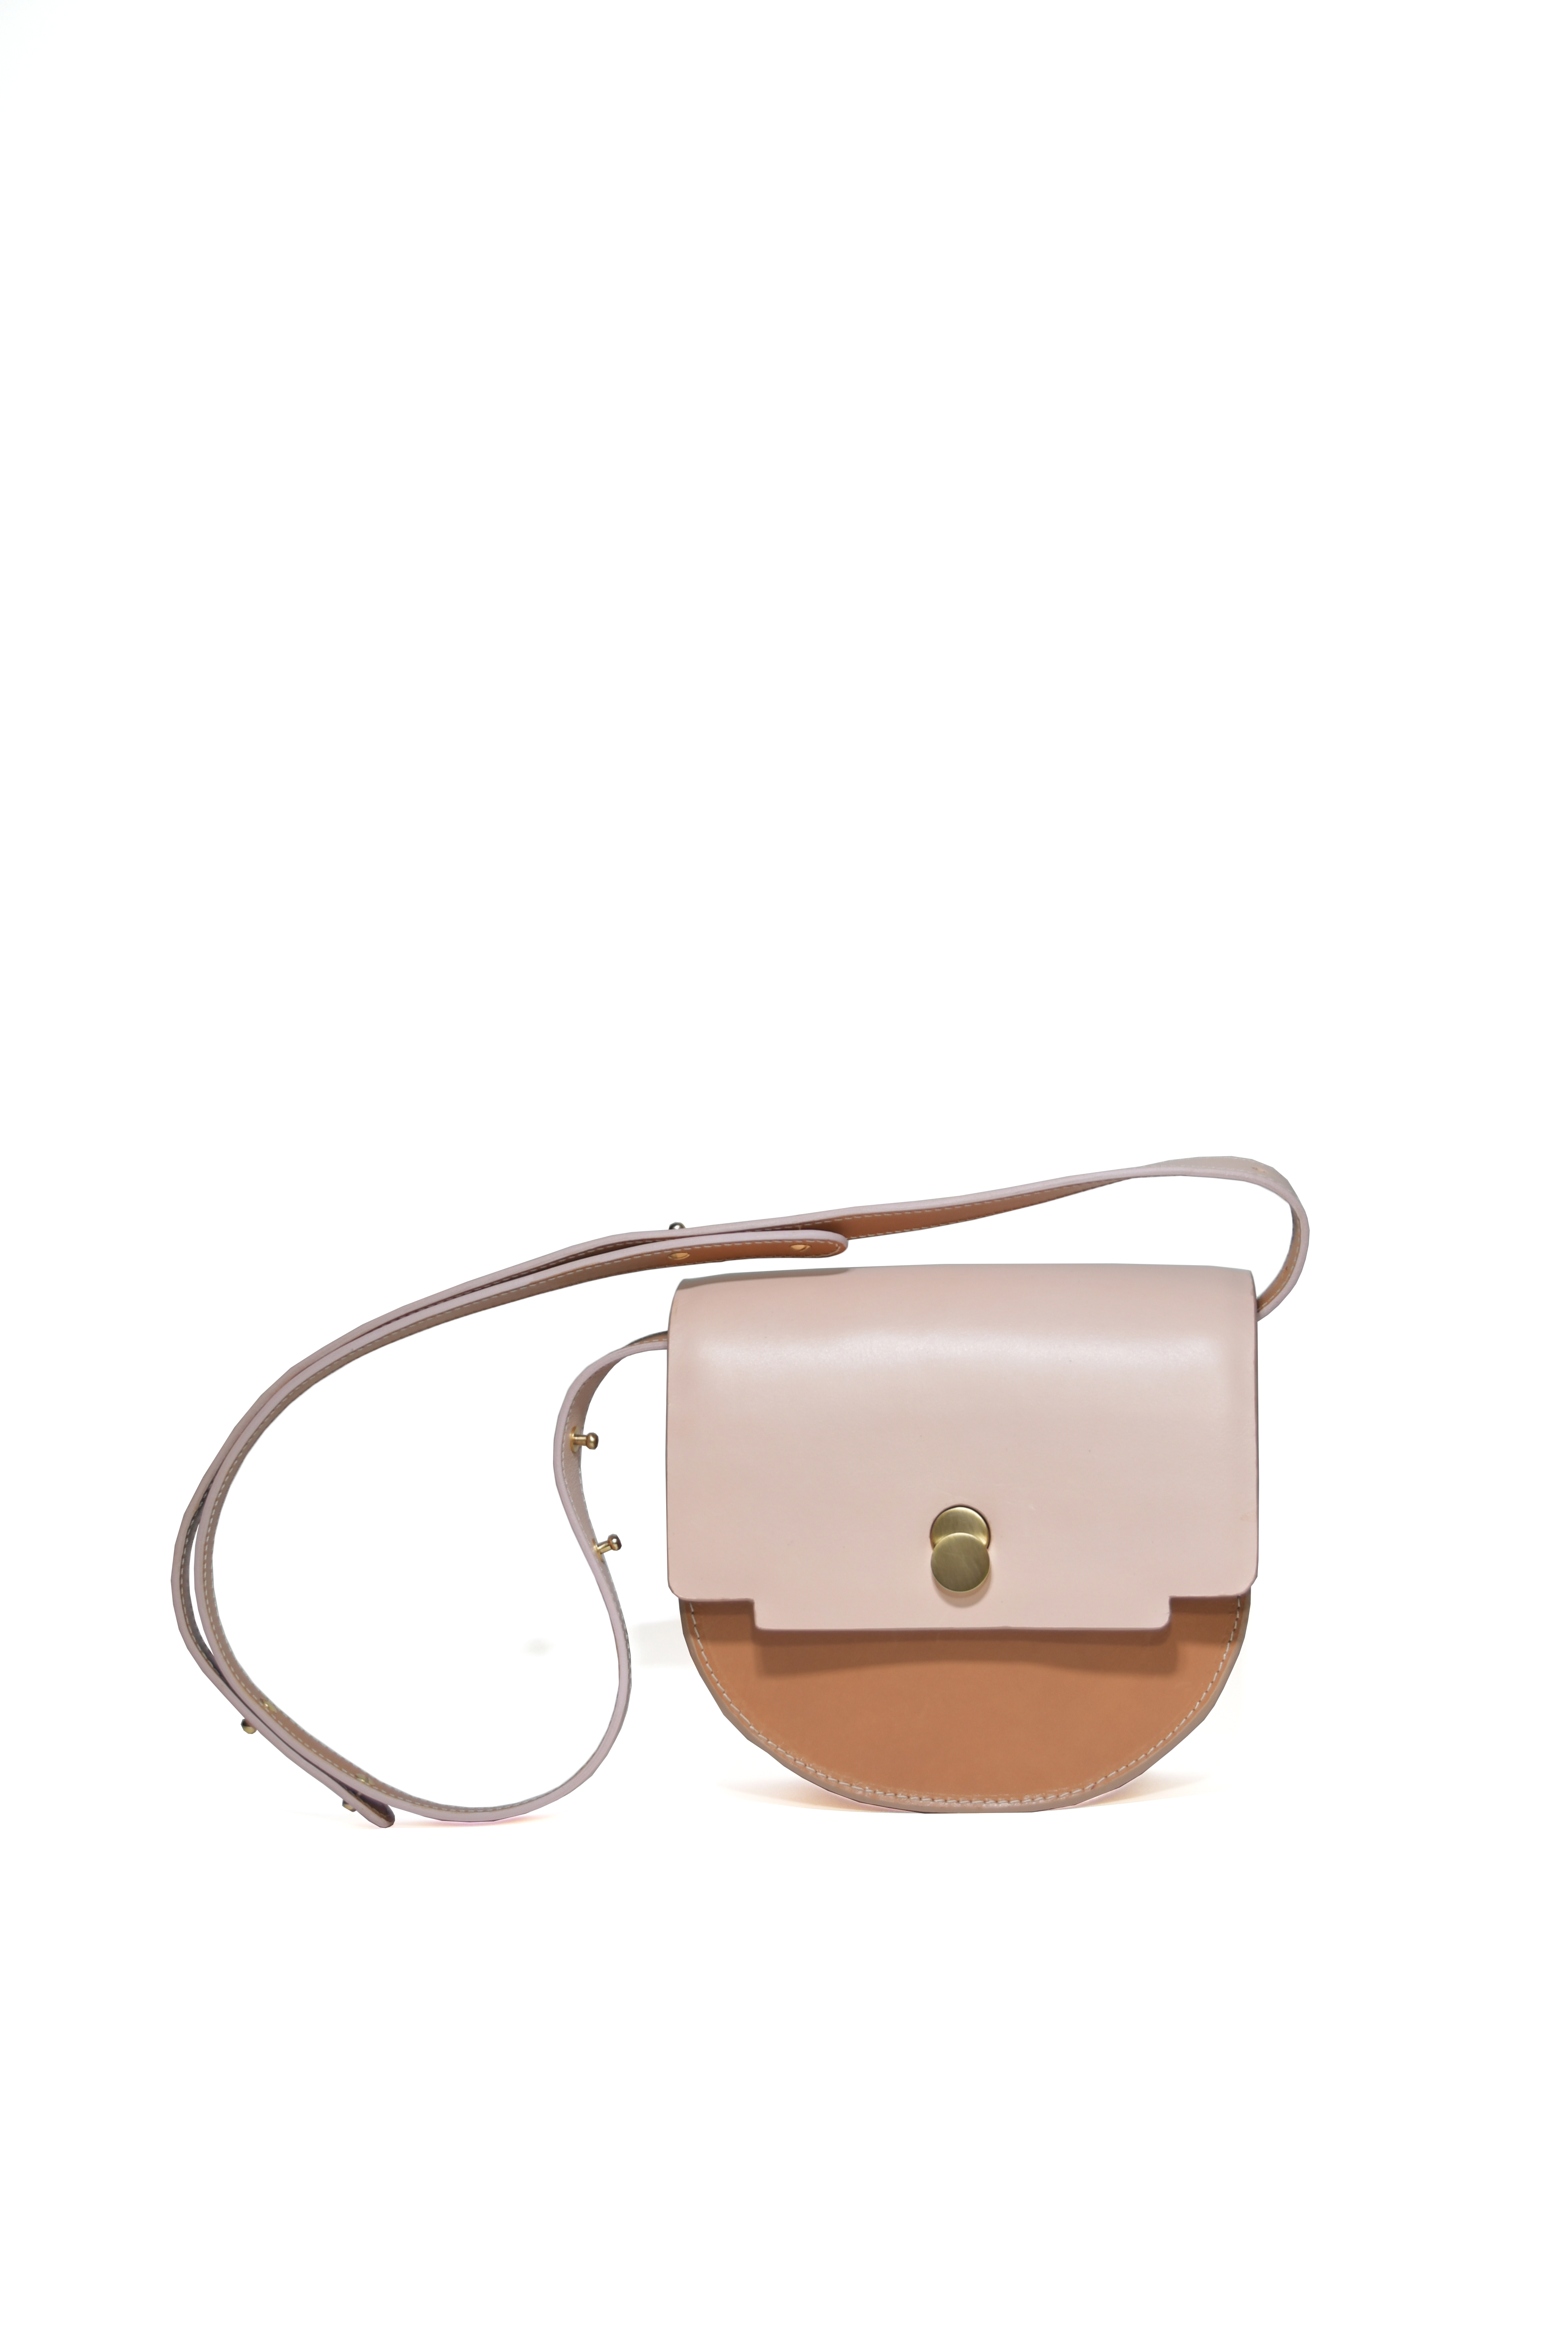 Mita Saddle bag Orchidea by LAHARA on curated-crowd.com